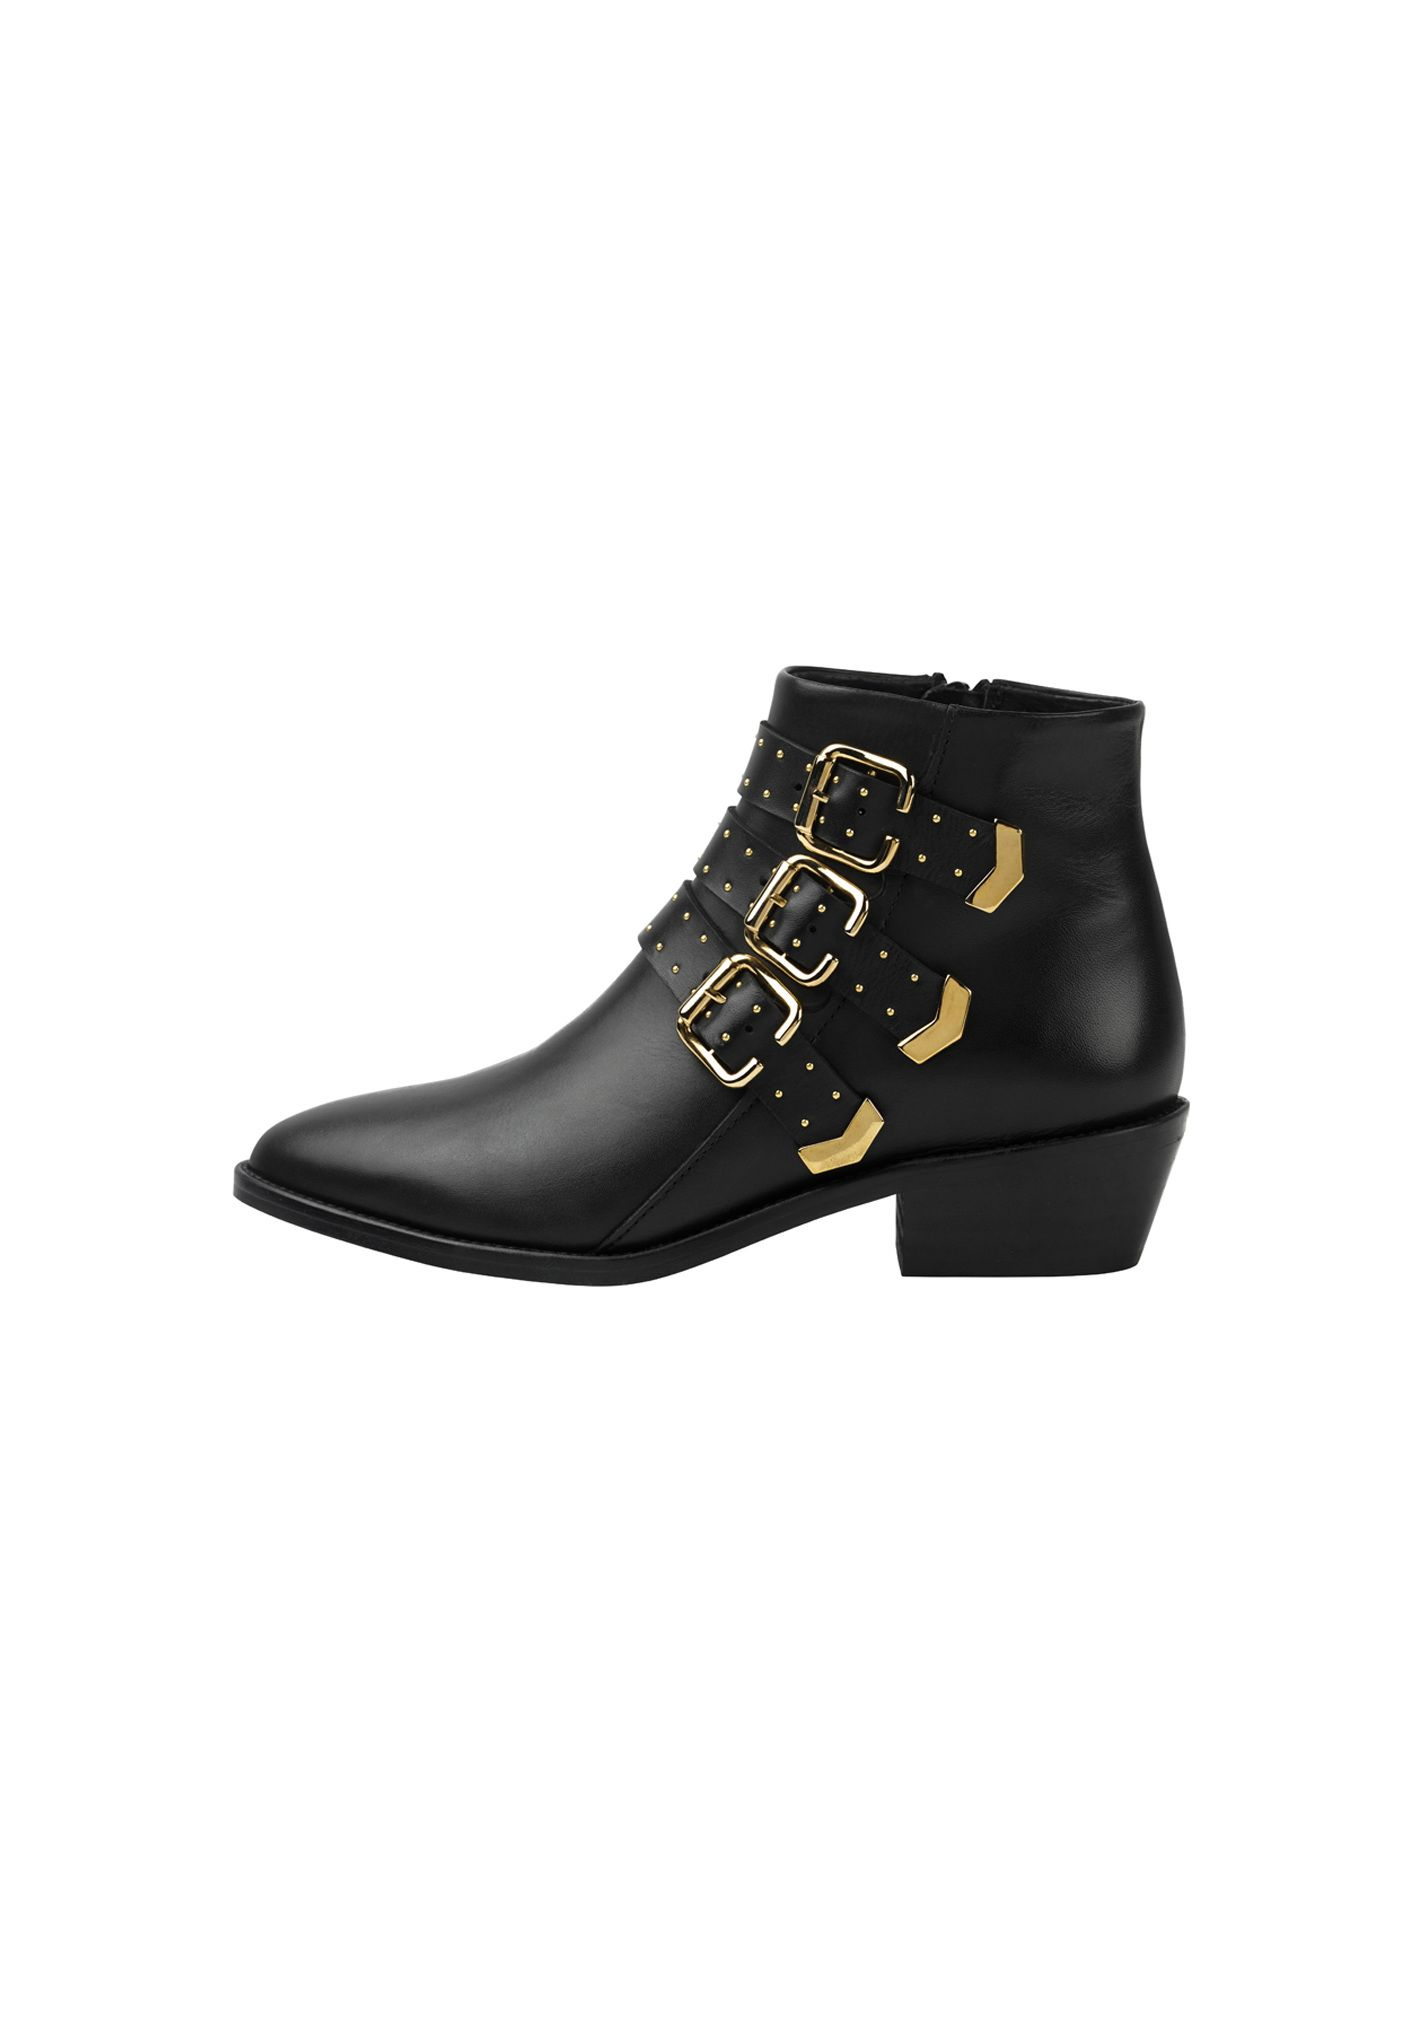 Derby Buckle Boots   Shoes   Pinterest   Buckle boots, Boots and ... a984dc7a28